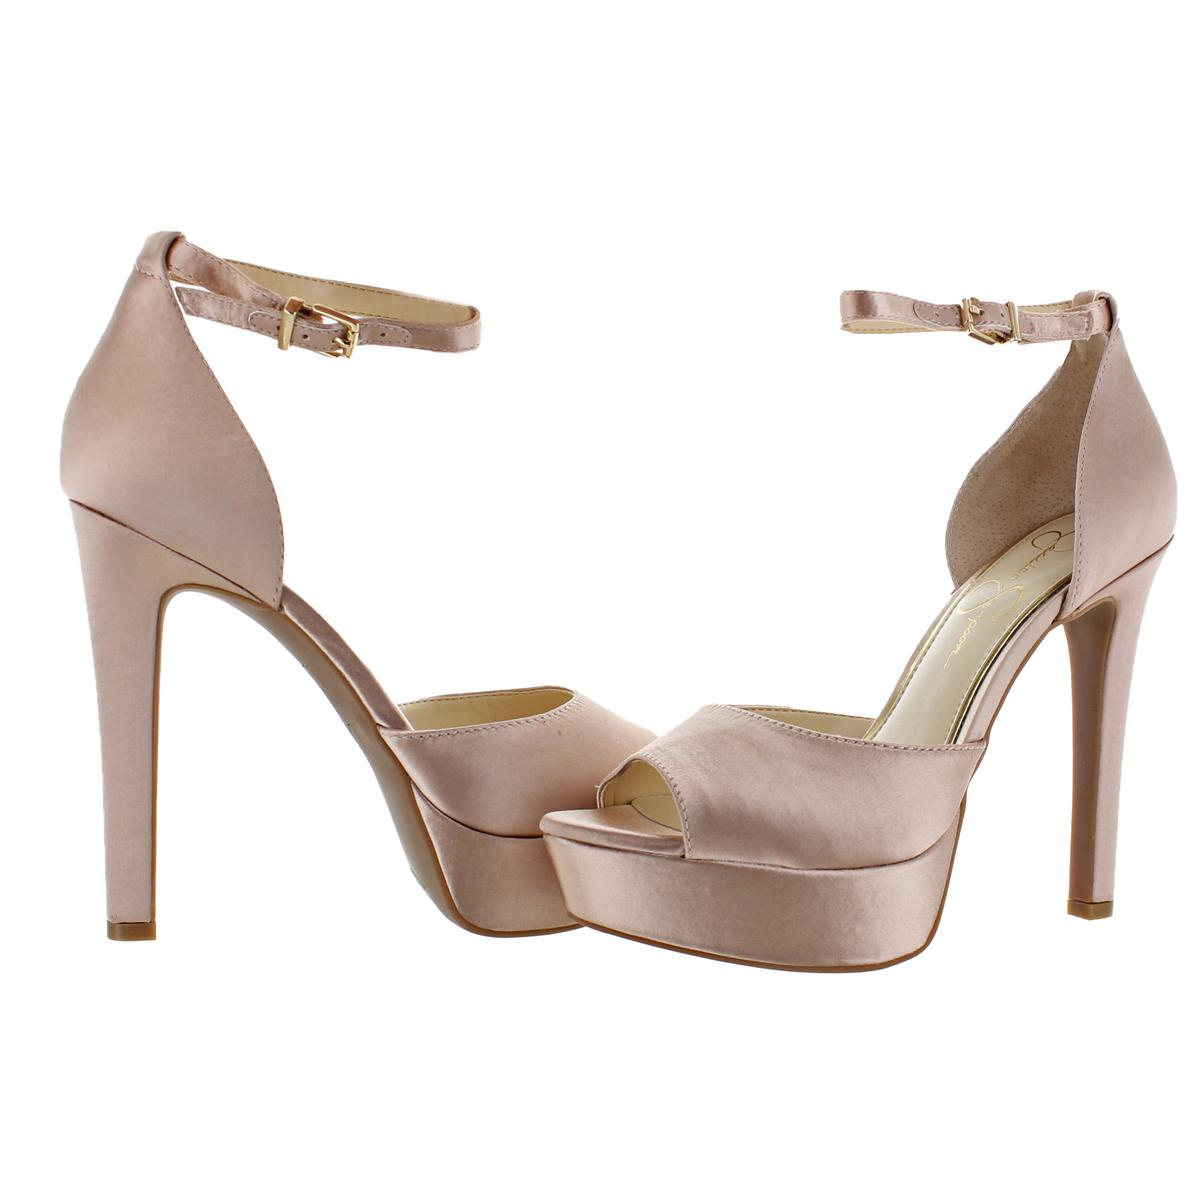 Jessica-Simpson-Women-039-s-Beeya-Ankle-Strap-Platform-Heeled-Sandals-Shoes thumbnail 6